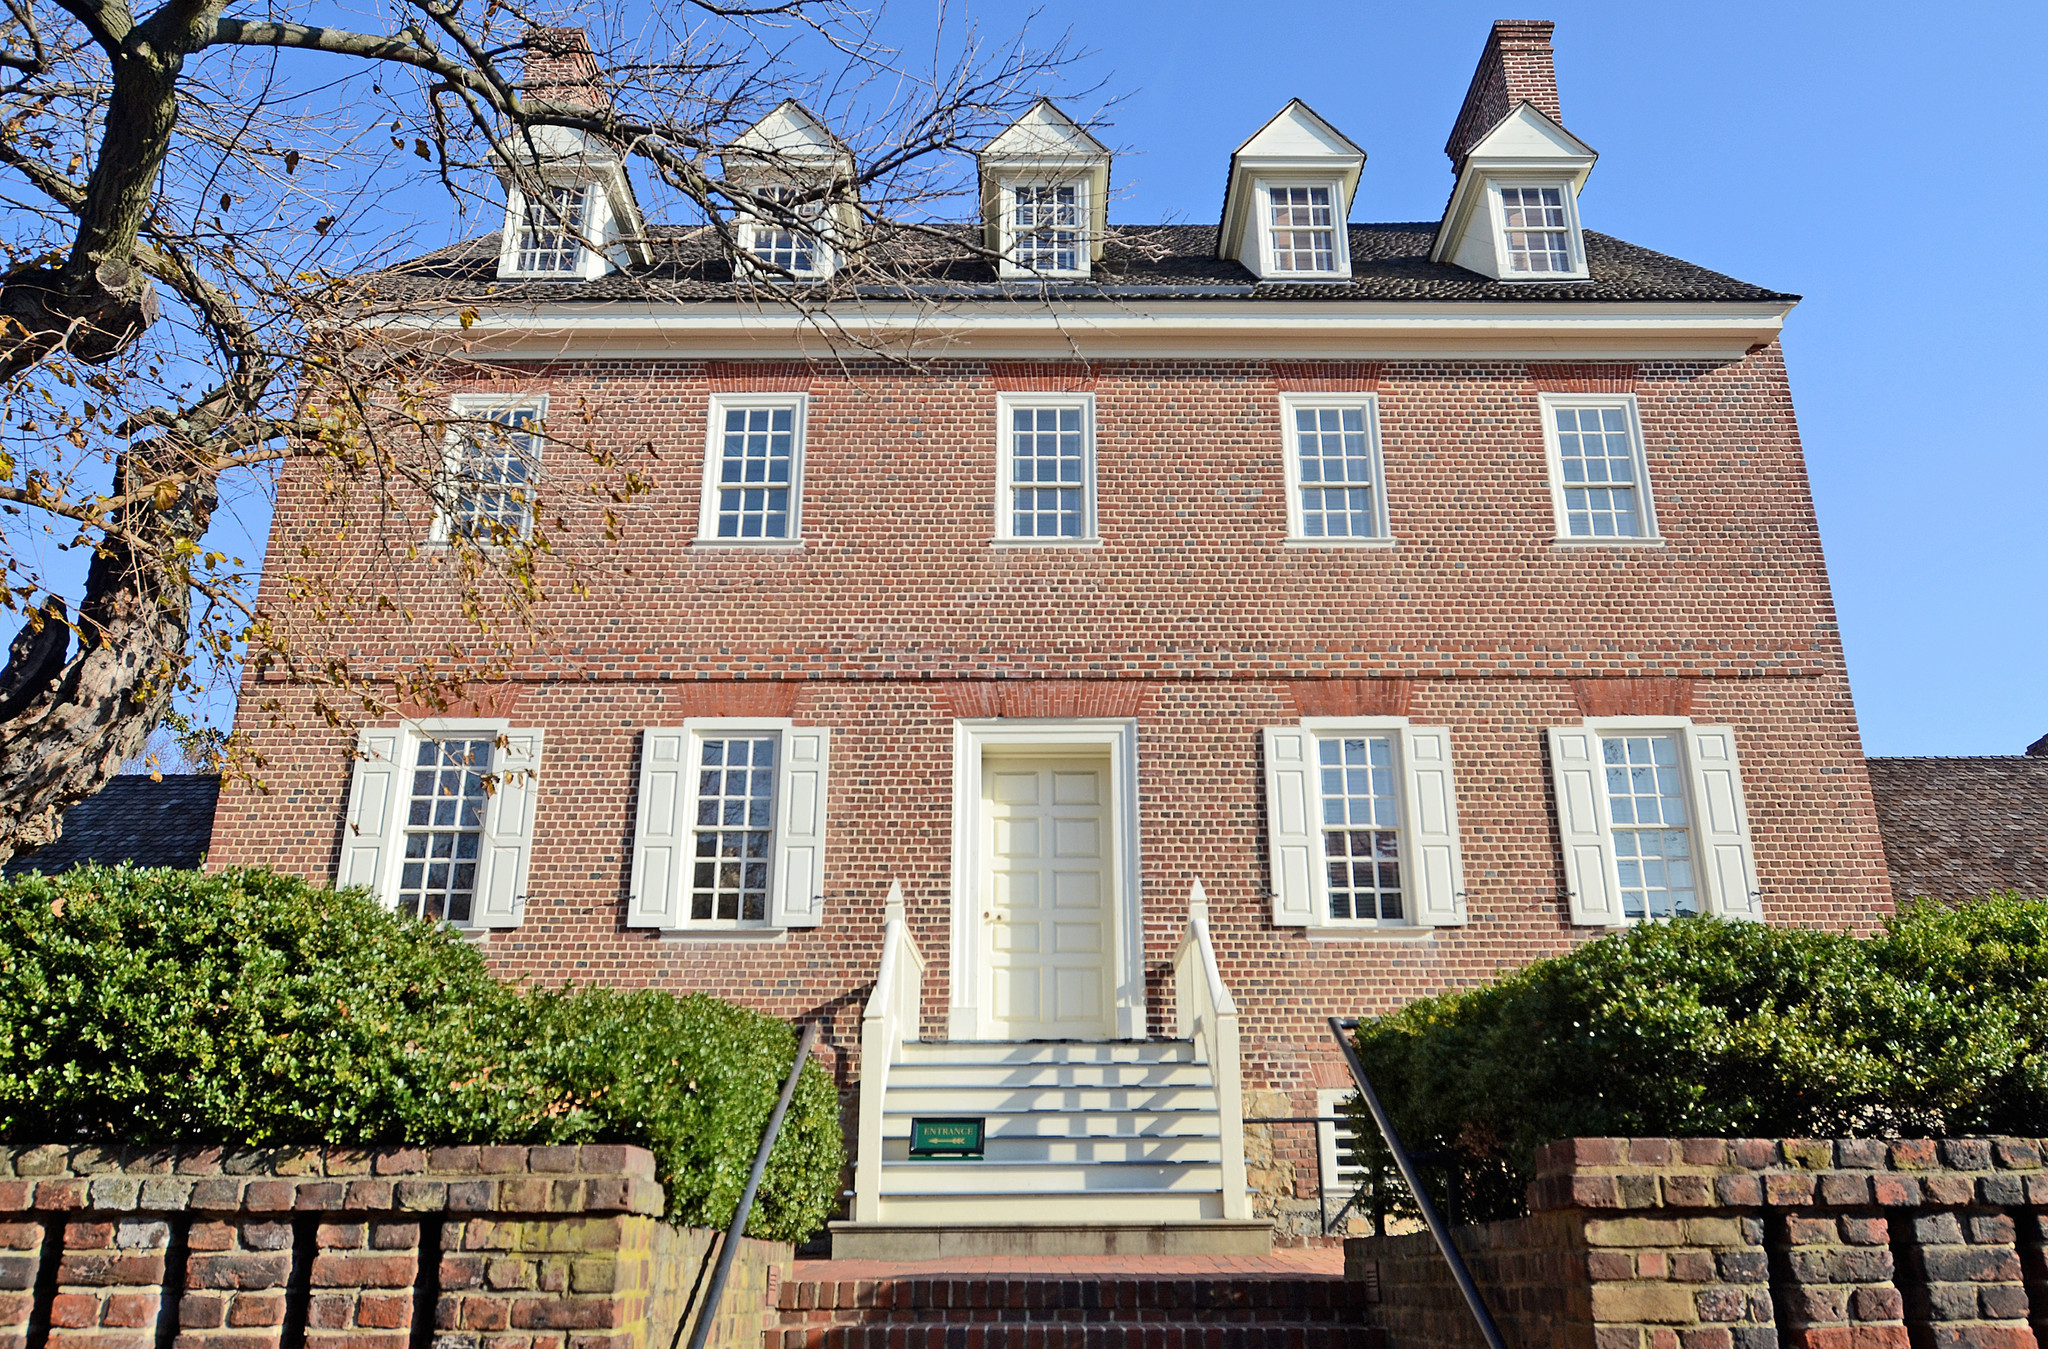 cgnews-paca-house-free-to-annapolis-residents-in-april-20150402.jpg